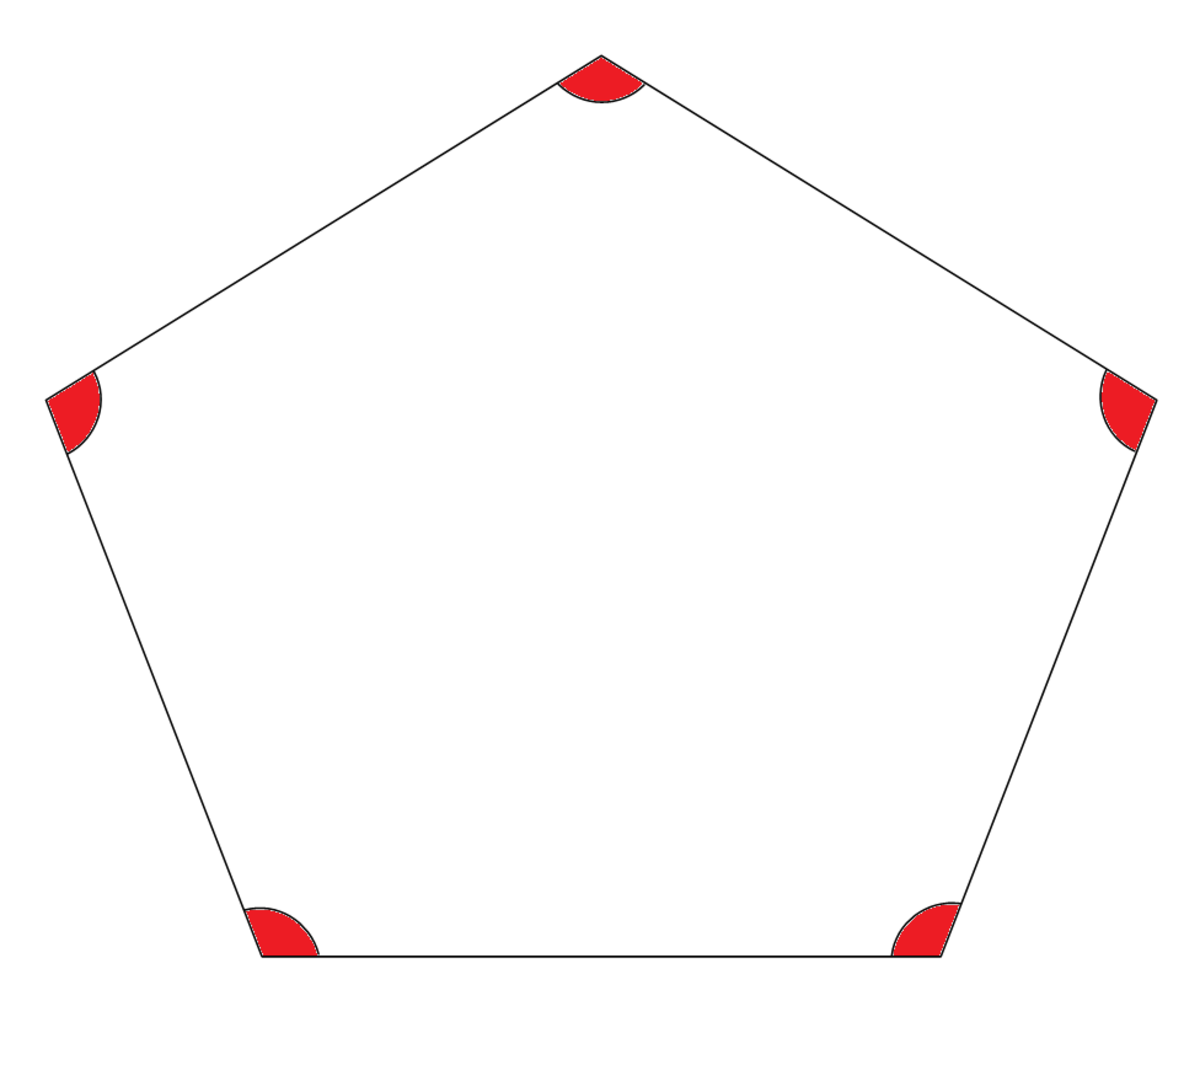 The interior angles of a pentagon.